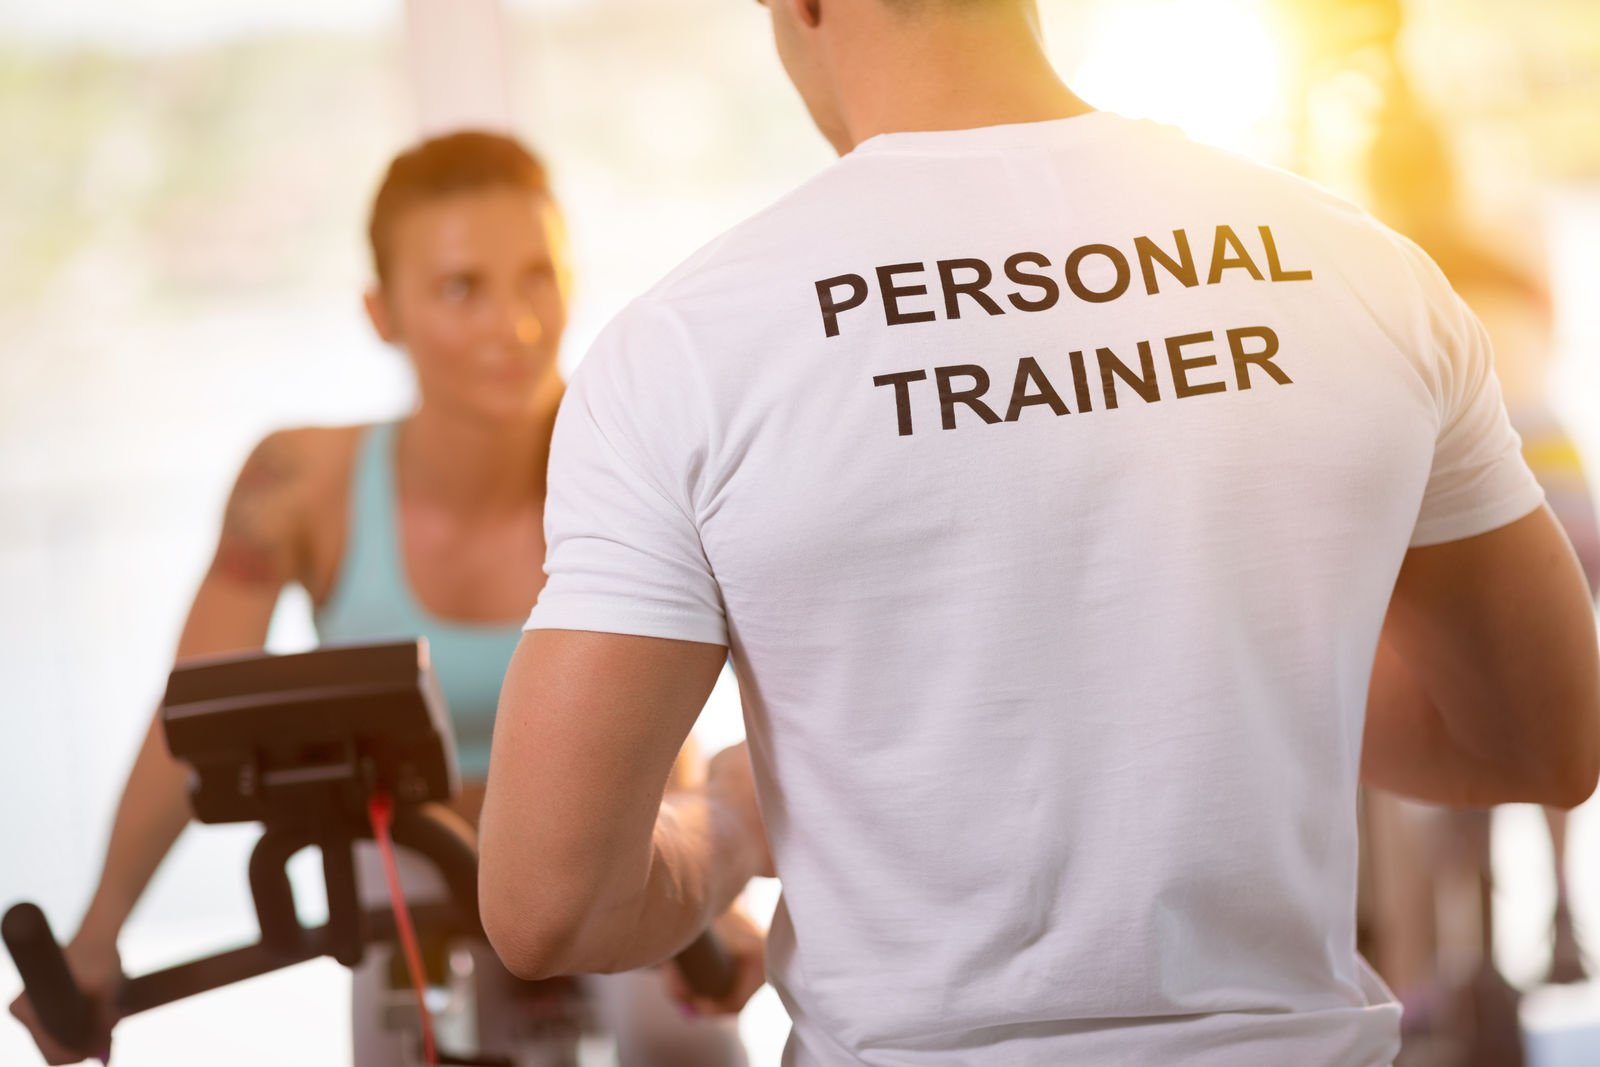 Review Afaa Personal Trainer Certification Exercise Blog